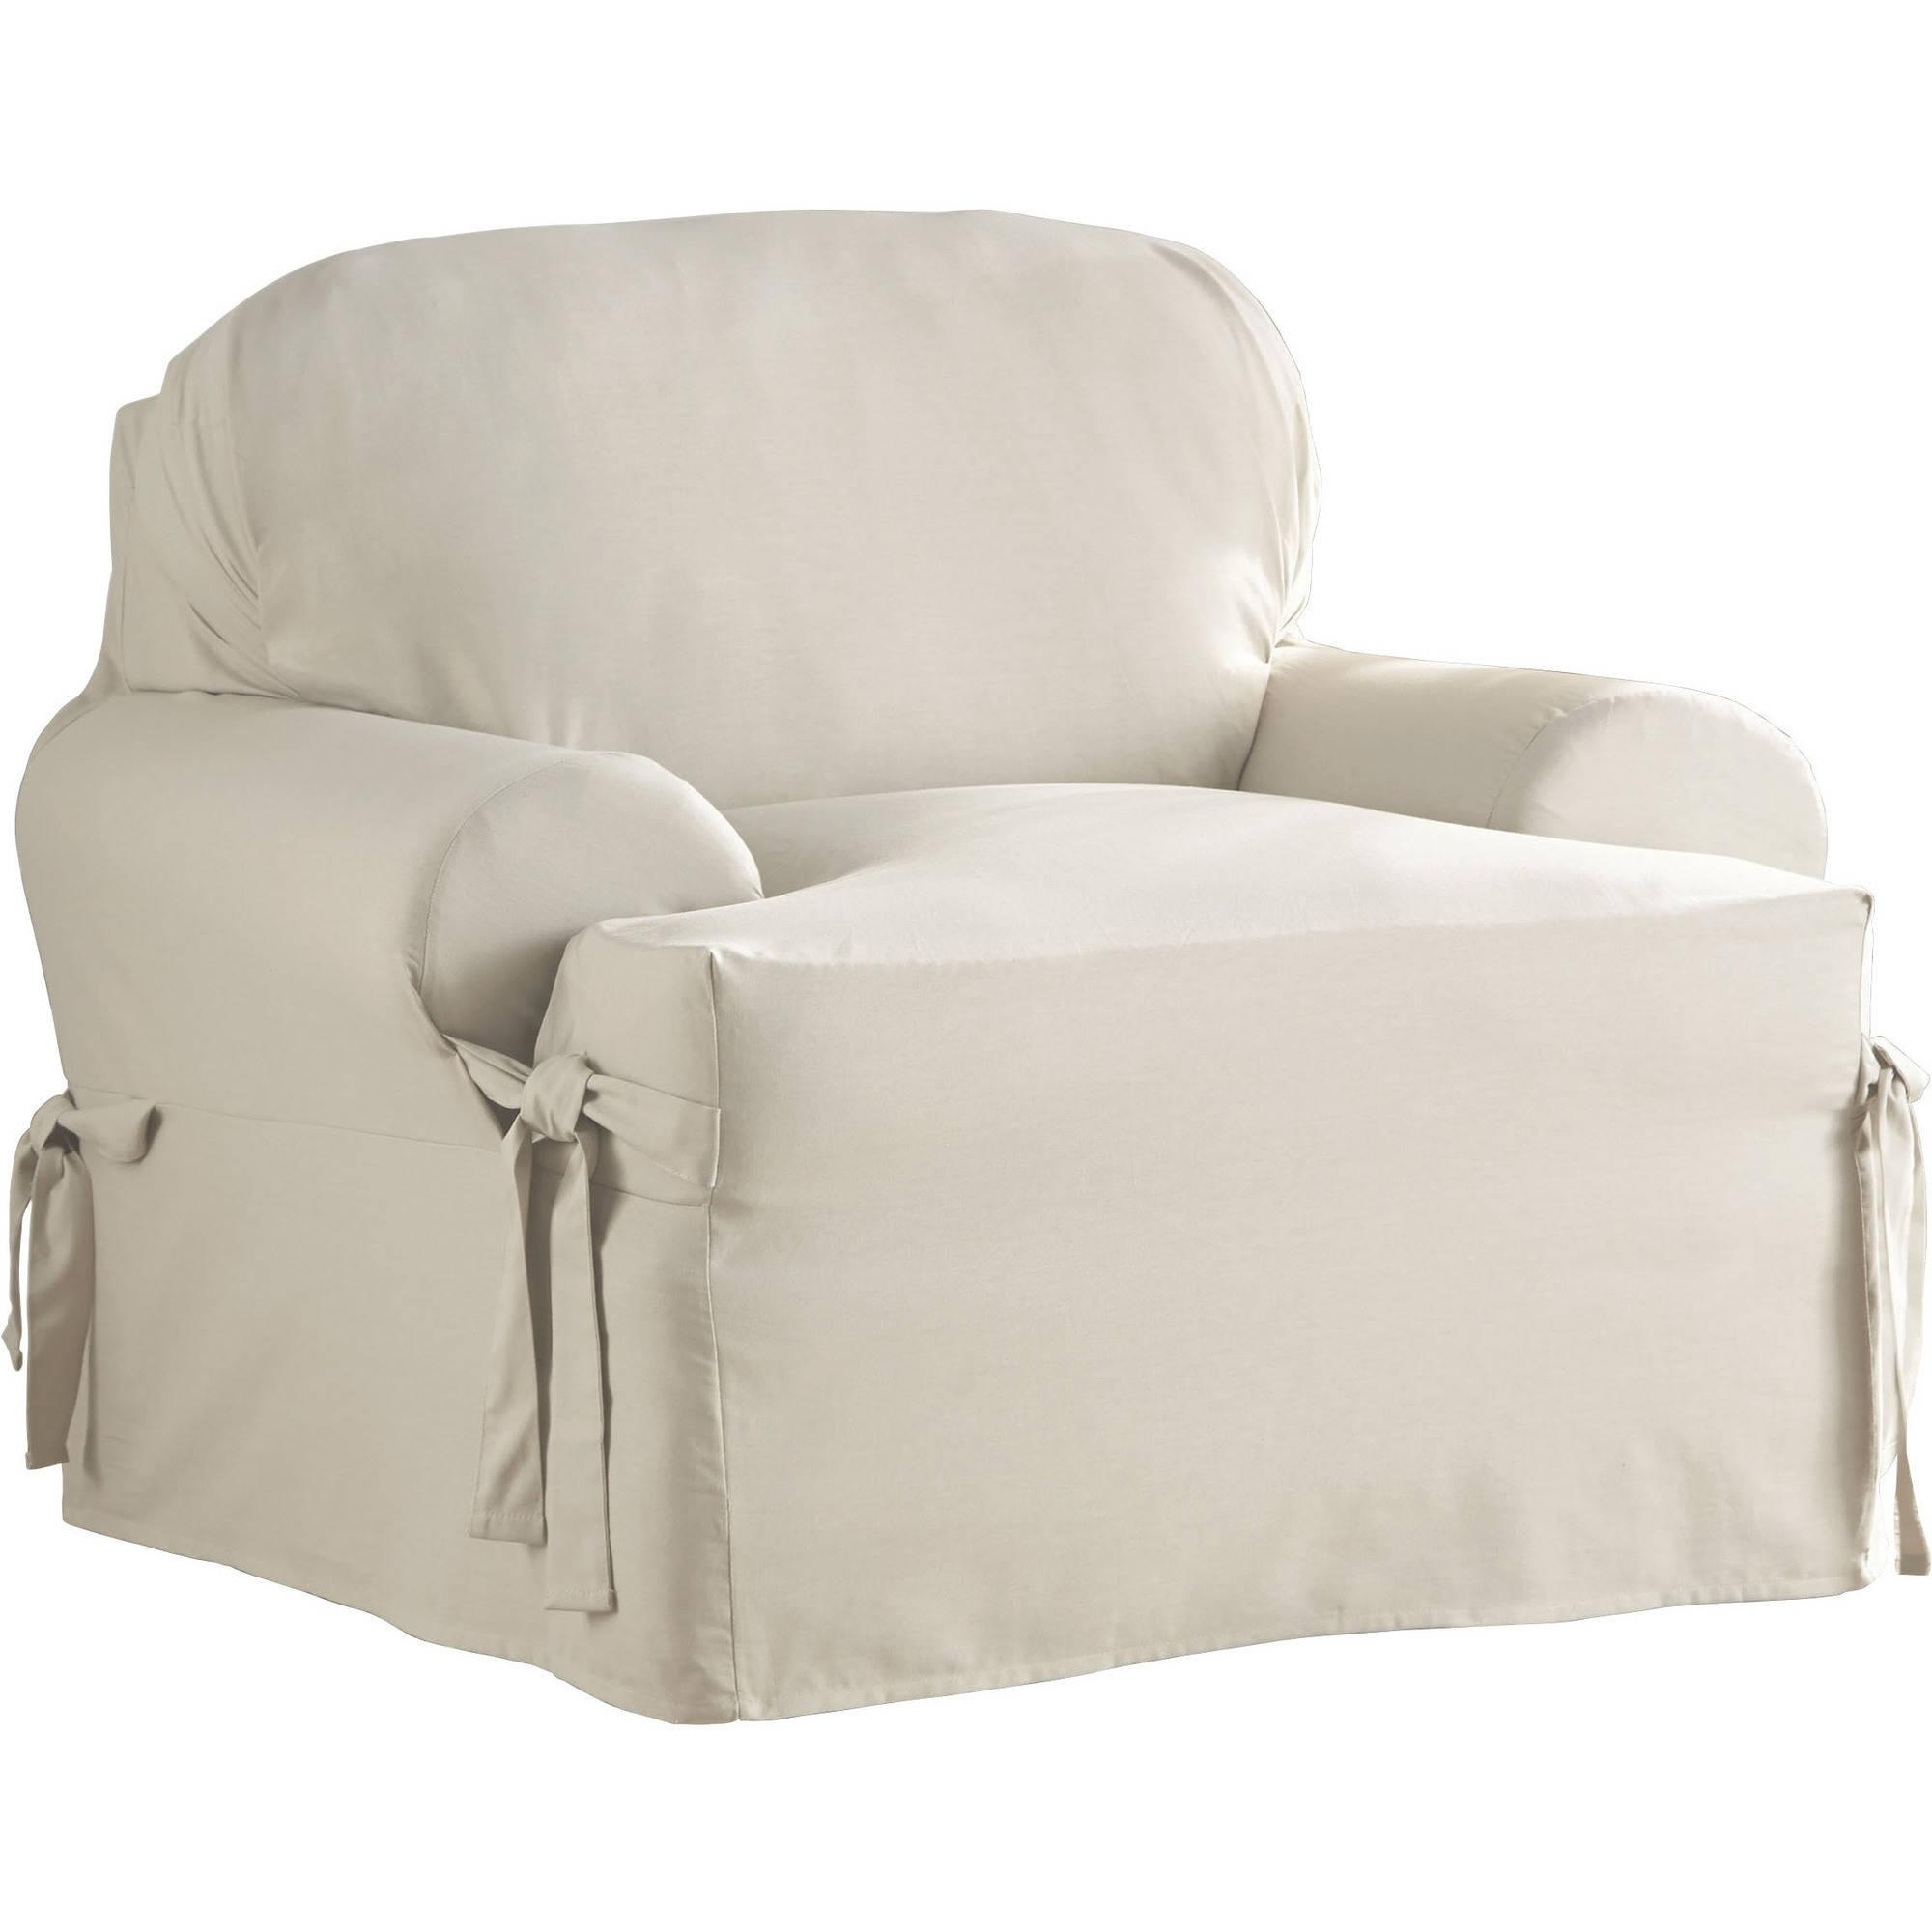 Slipcovers – Walmart For Sofa And Chair Slipcovers (View 3 of 20)